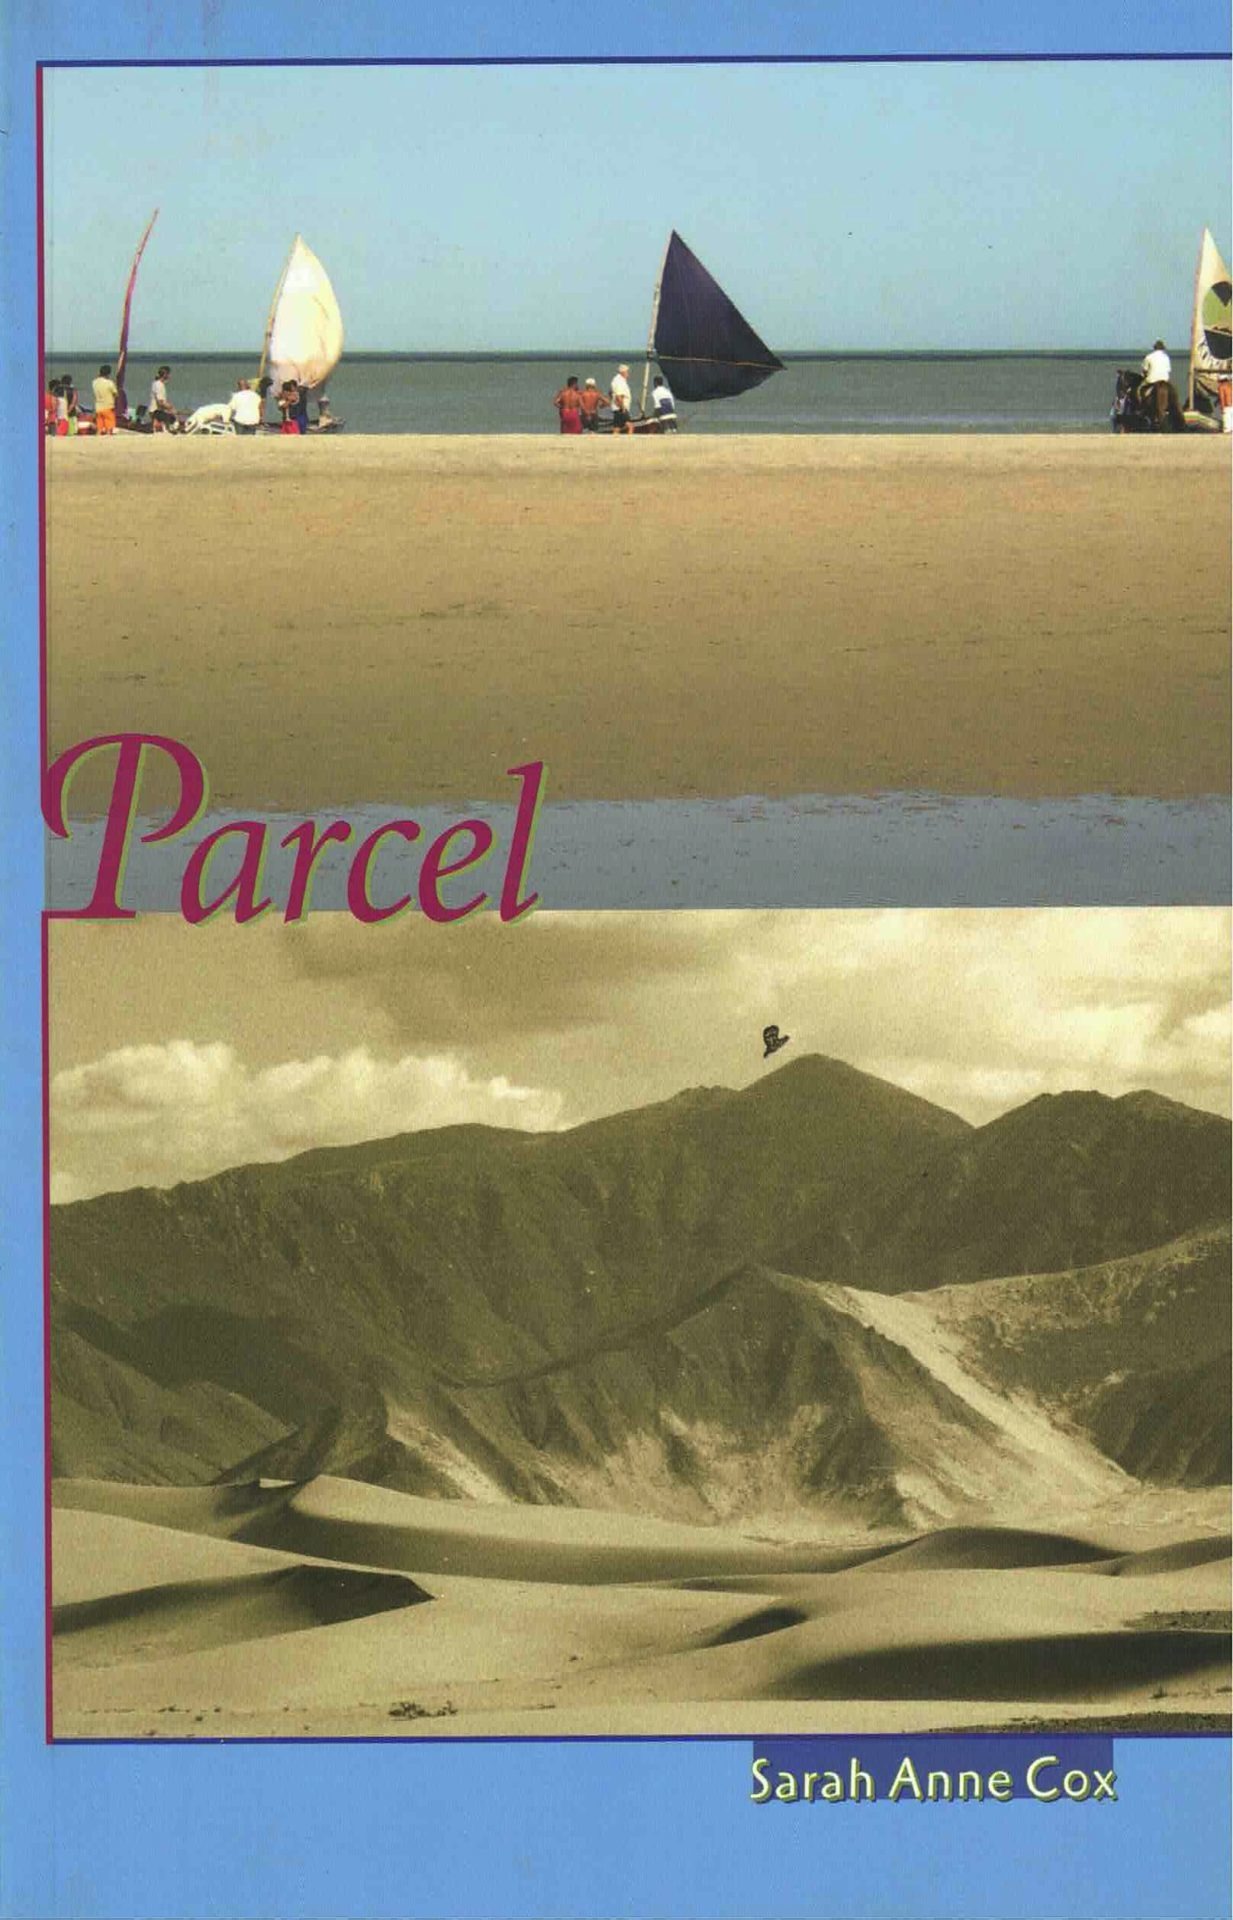 cover of Parcel by Sarah Anne Cox, image of groups of people with small sailboats on a beach above image of a large bird flying over sandy dunes